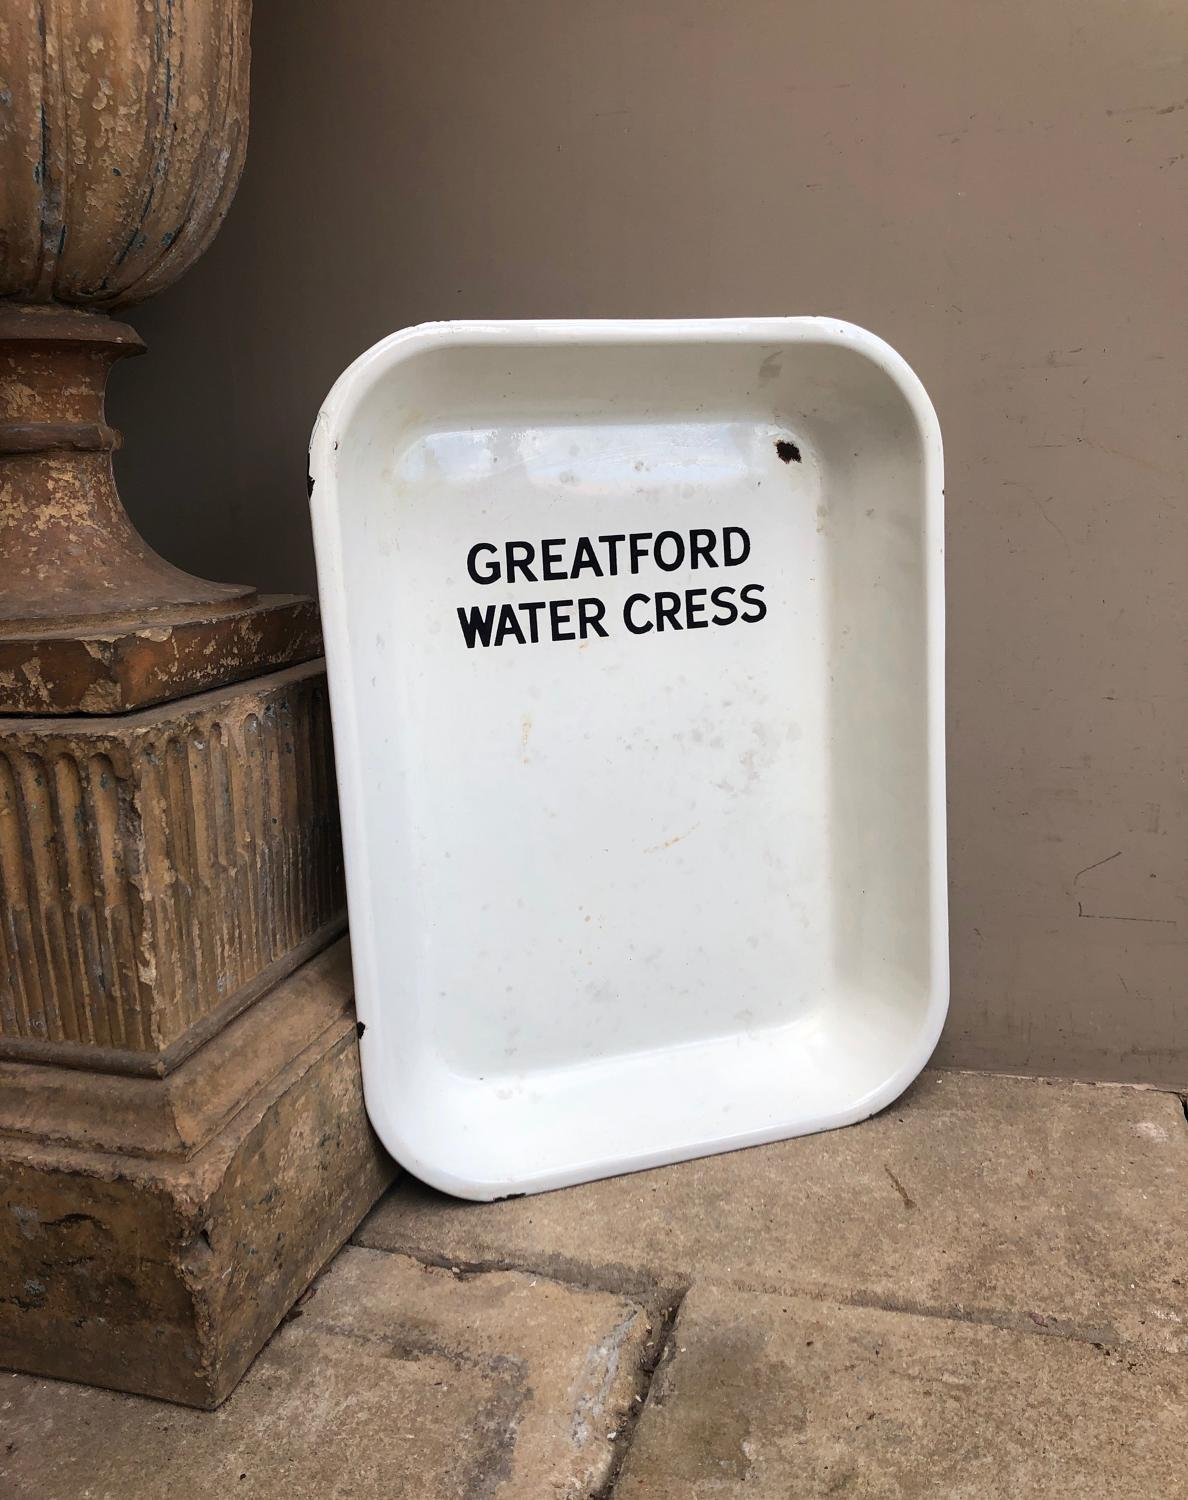 Rare Early 20thC White Enamel Advertising Tray - Greatford Water Cress